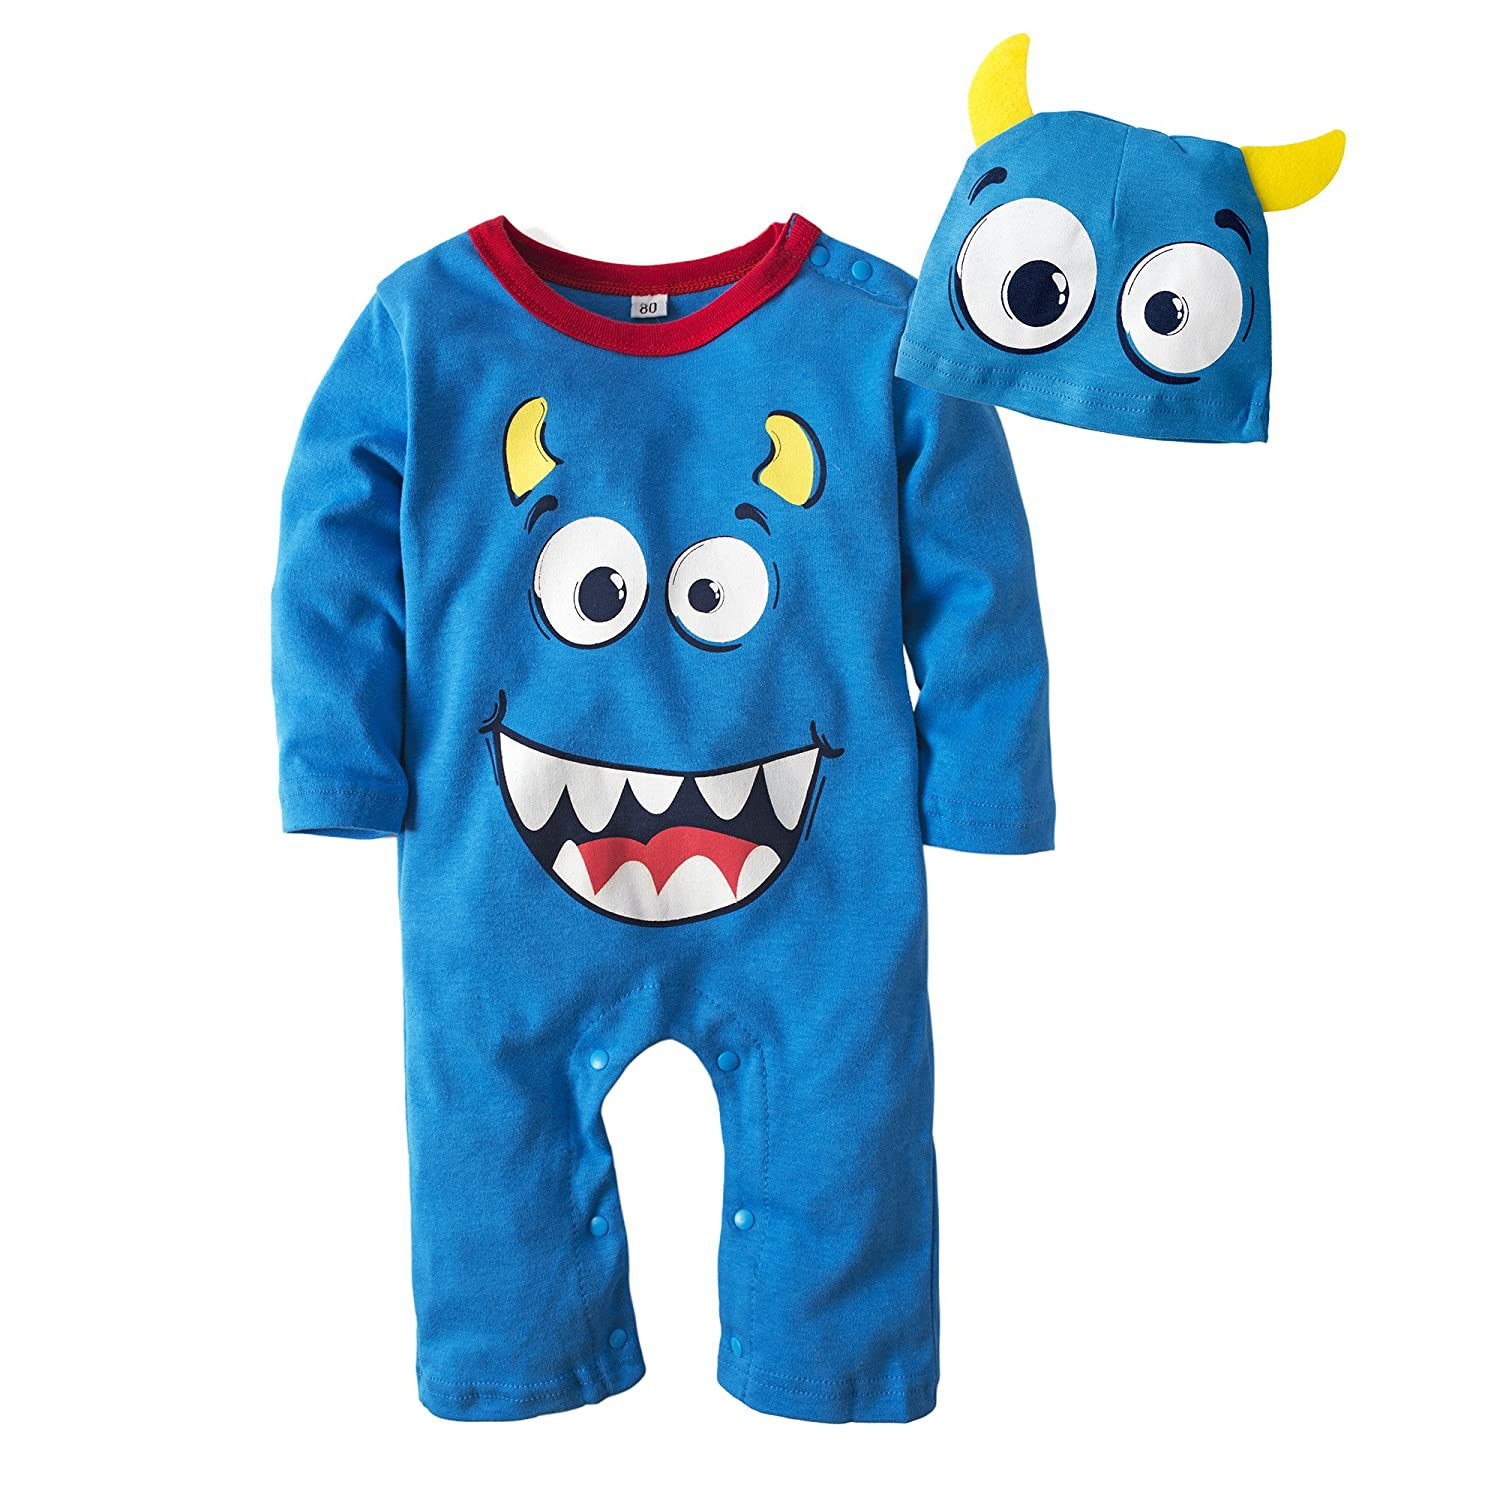 BIG ELEPHANT Baby Boys 1 Piece Long Sleeve Cute Halloween Pumpkin Romper Jumpsuit